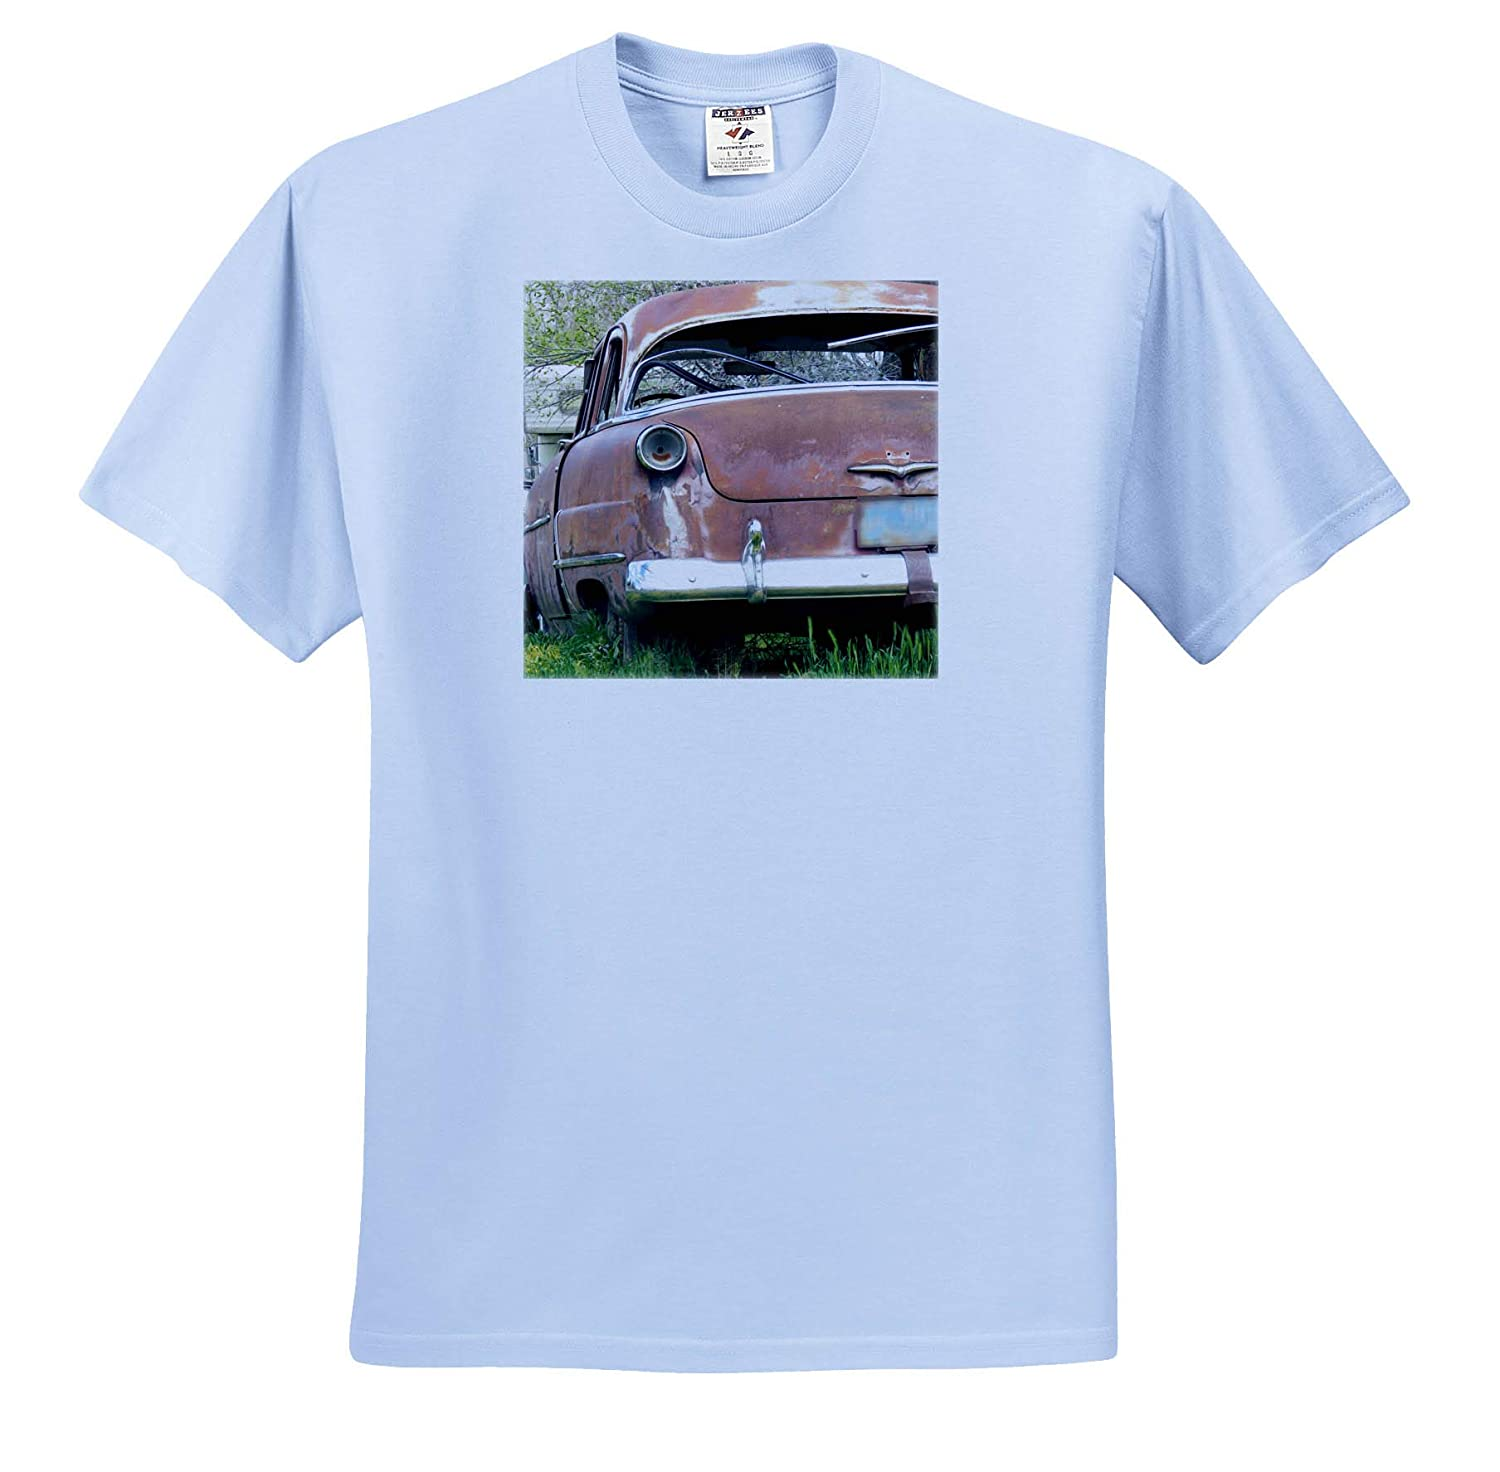 Adult T-Shirt XL 3dRose Jos Fauxtographee- Car ts/_318974 an Old car Parked in Some Tall Grass